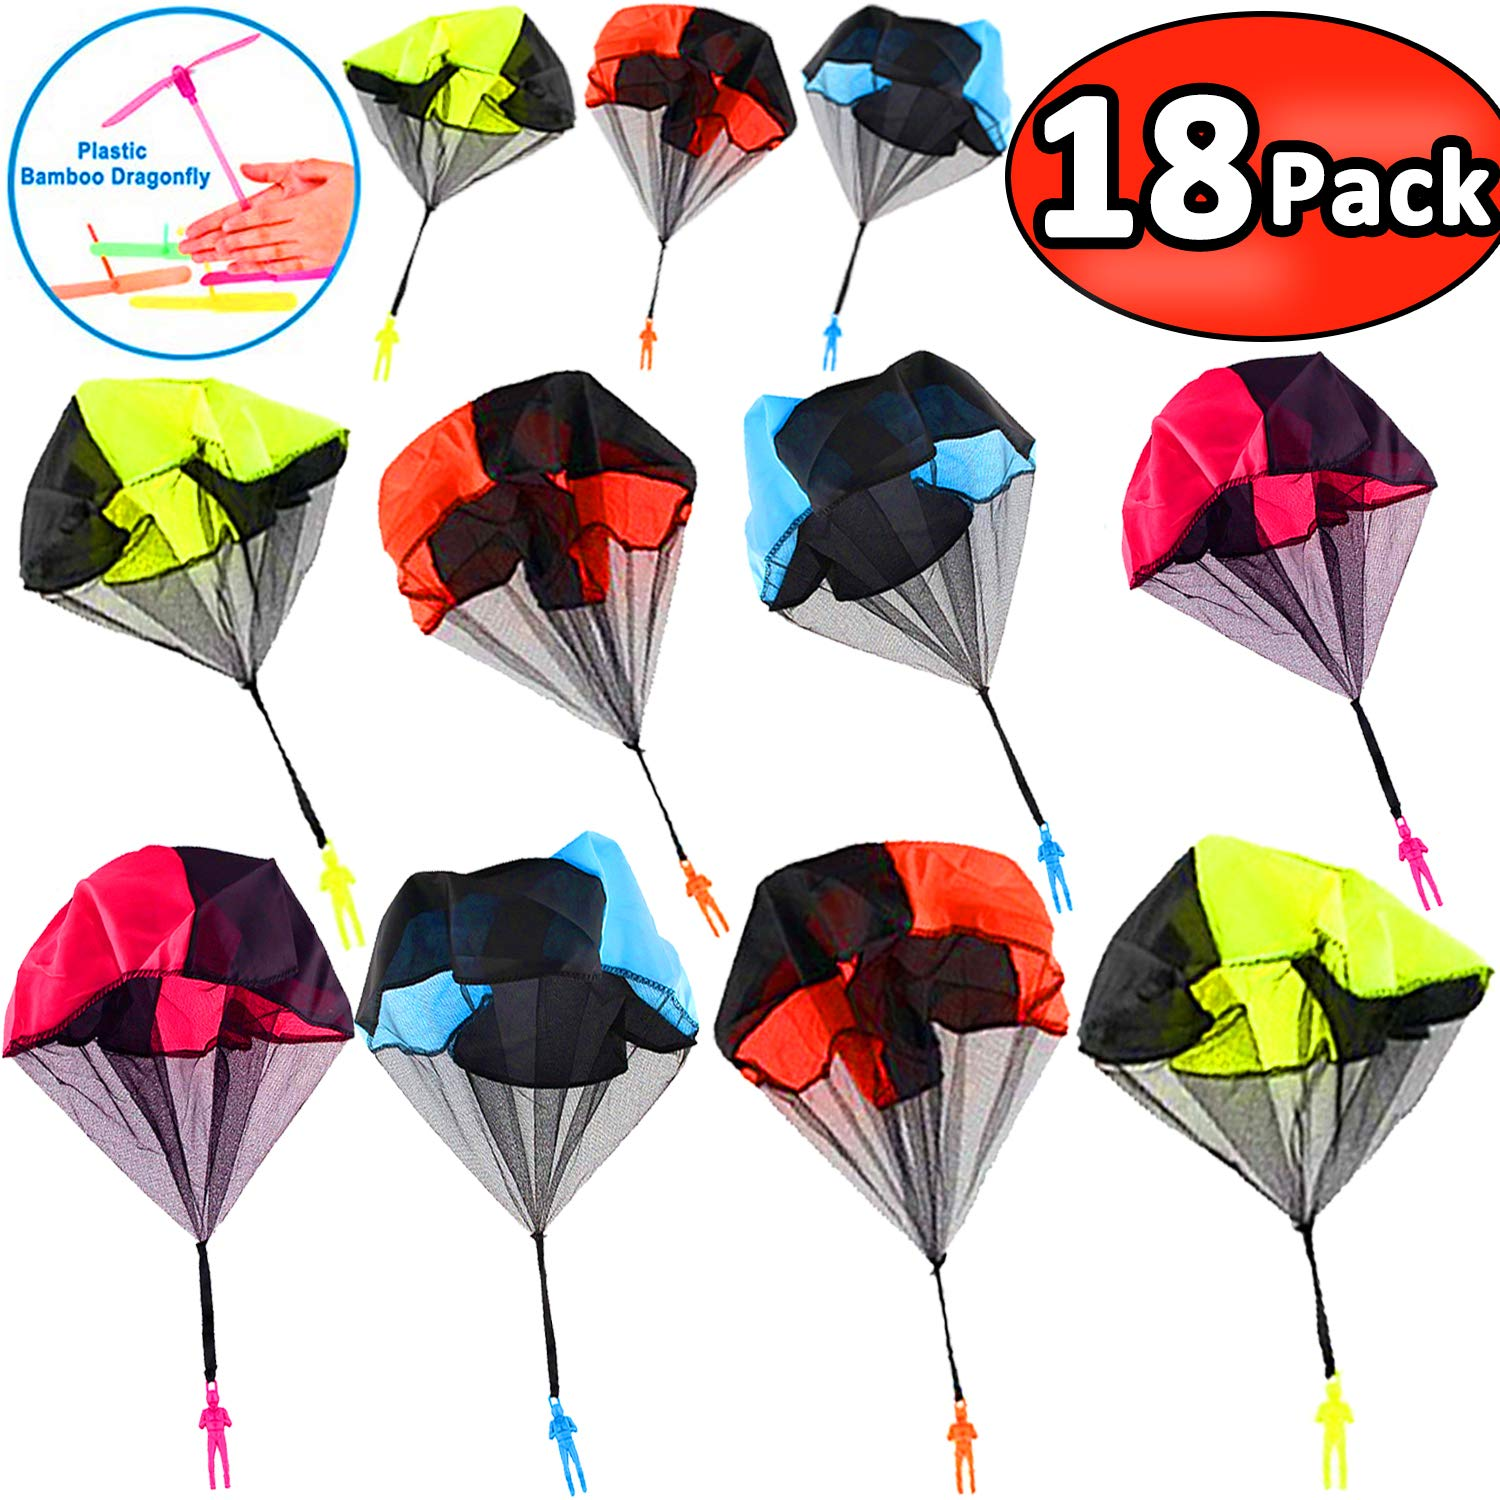 18 Pack Parachute Toys - Party Favors for Kids Flying Toys Parachute Army Men Parachute Tangle Free Throwing Parachute with Launcher Soldier Skydiver Hand Throw Sports & Outdoor July Deals